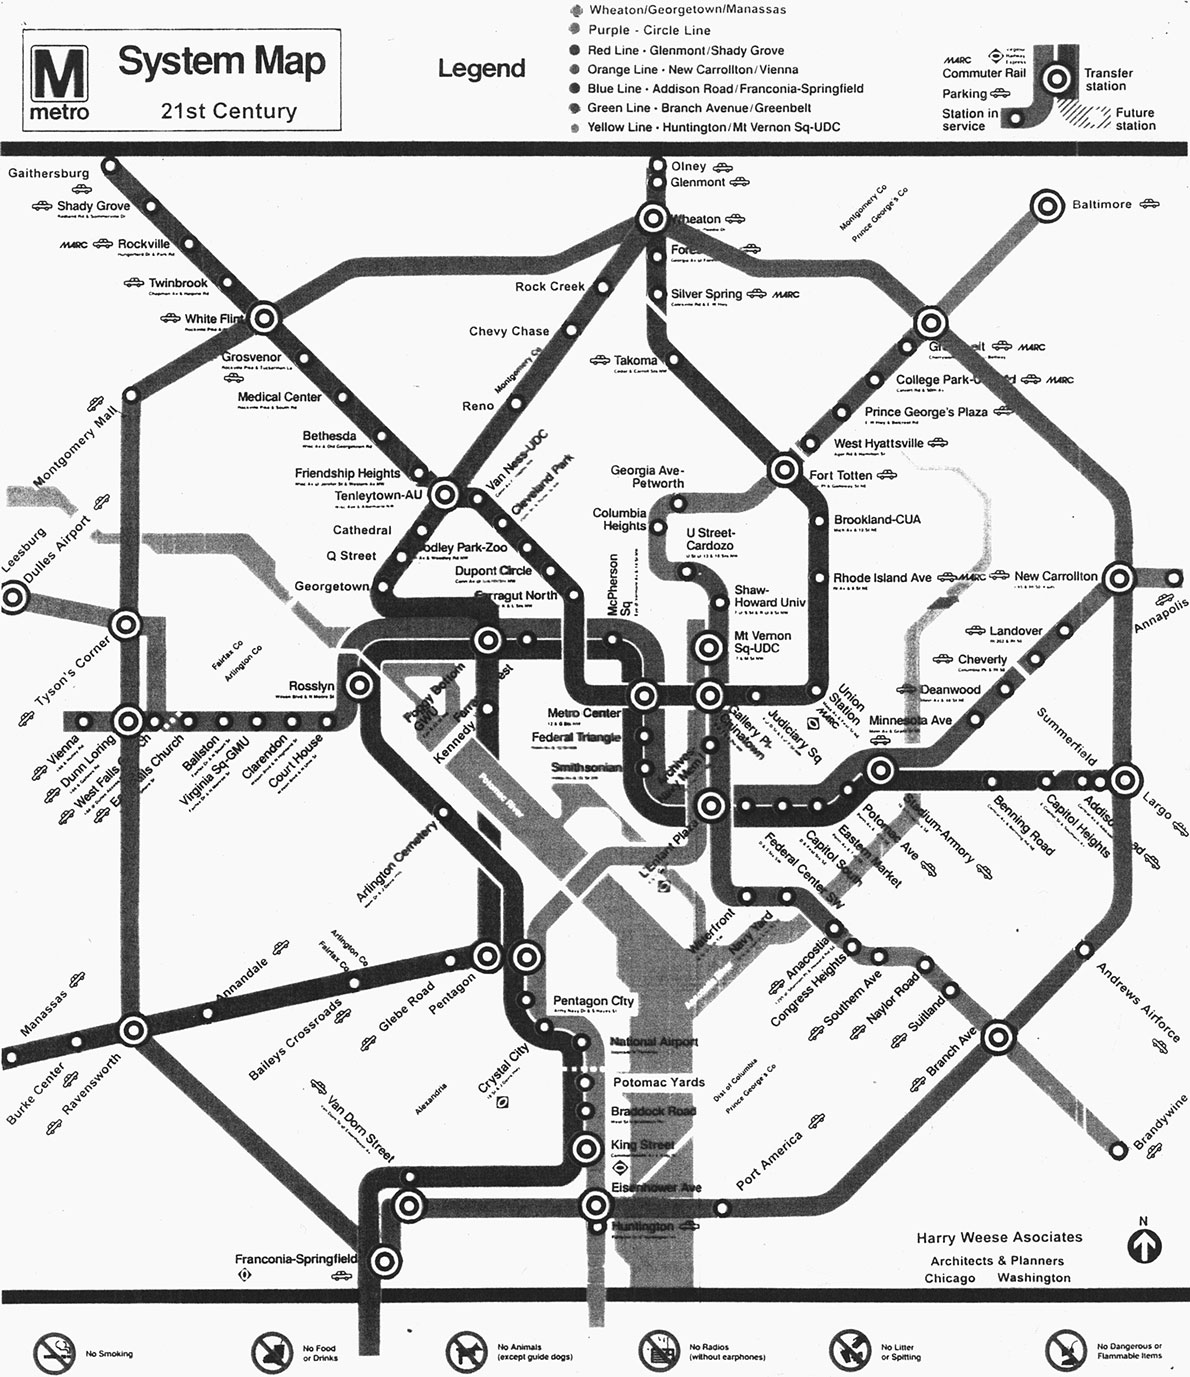 Black And White Subway Map.1990s Metro Fantasy Map Greater Greater Washington